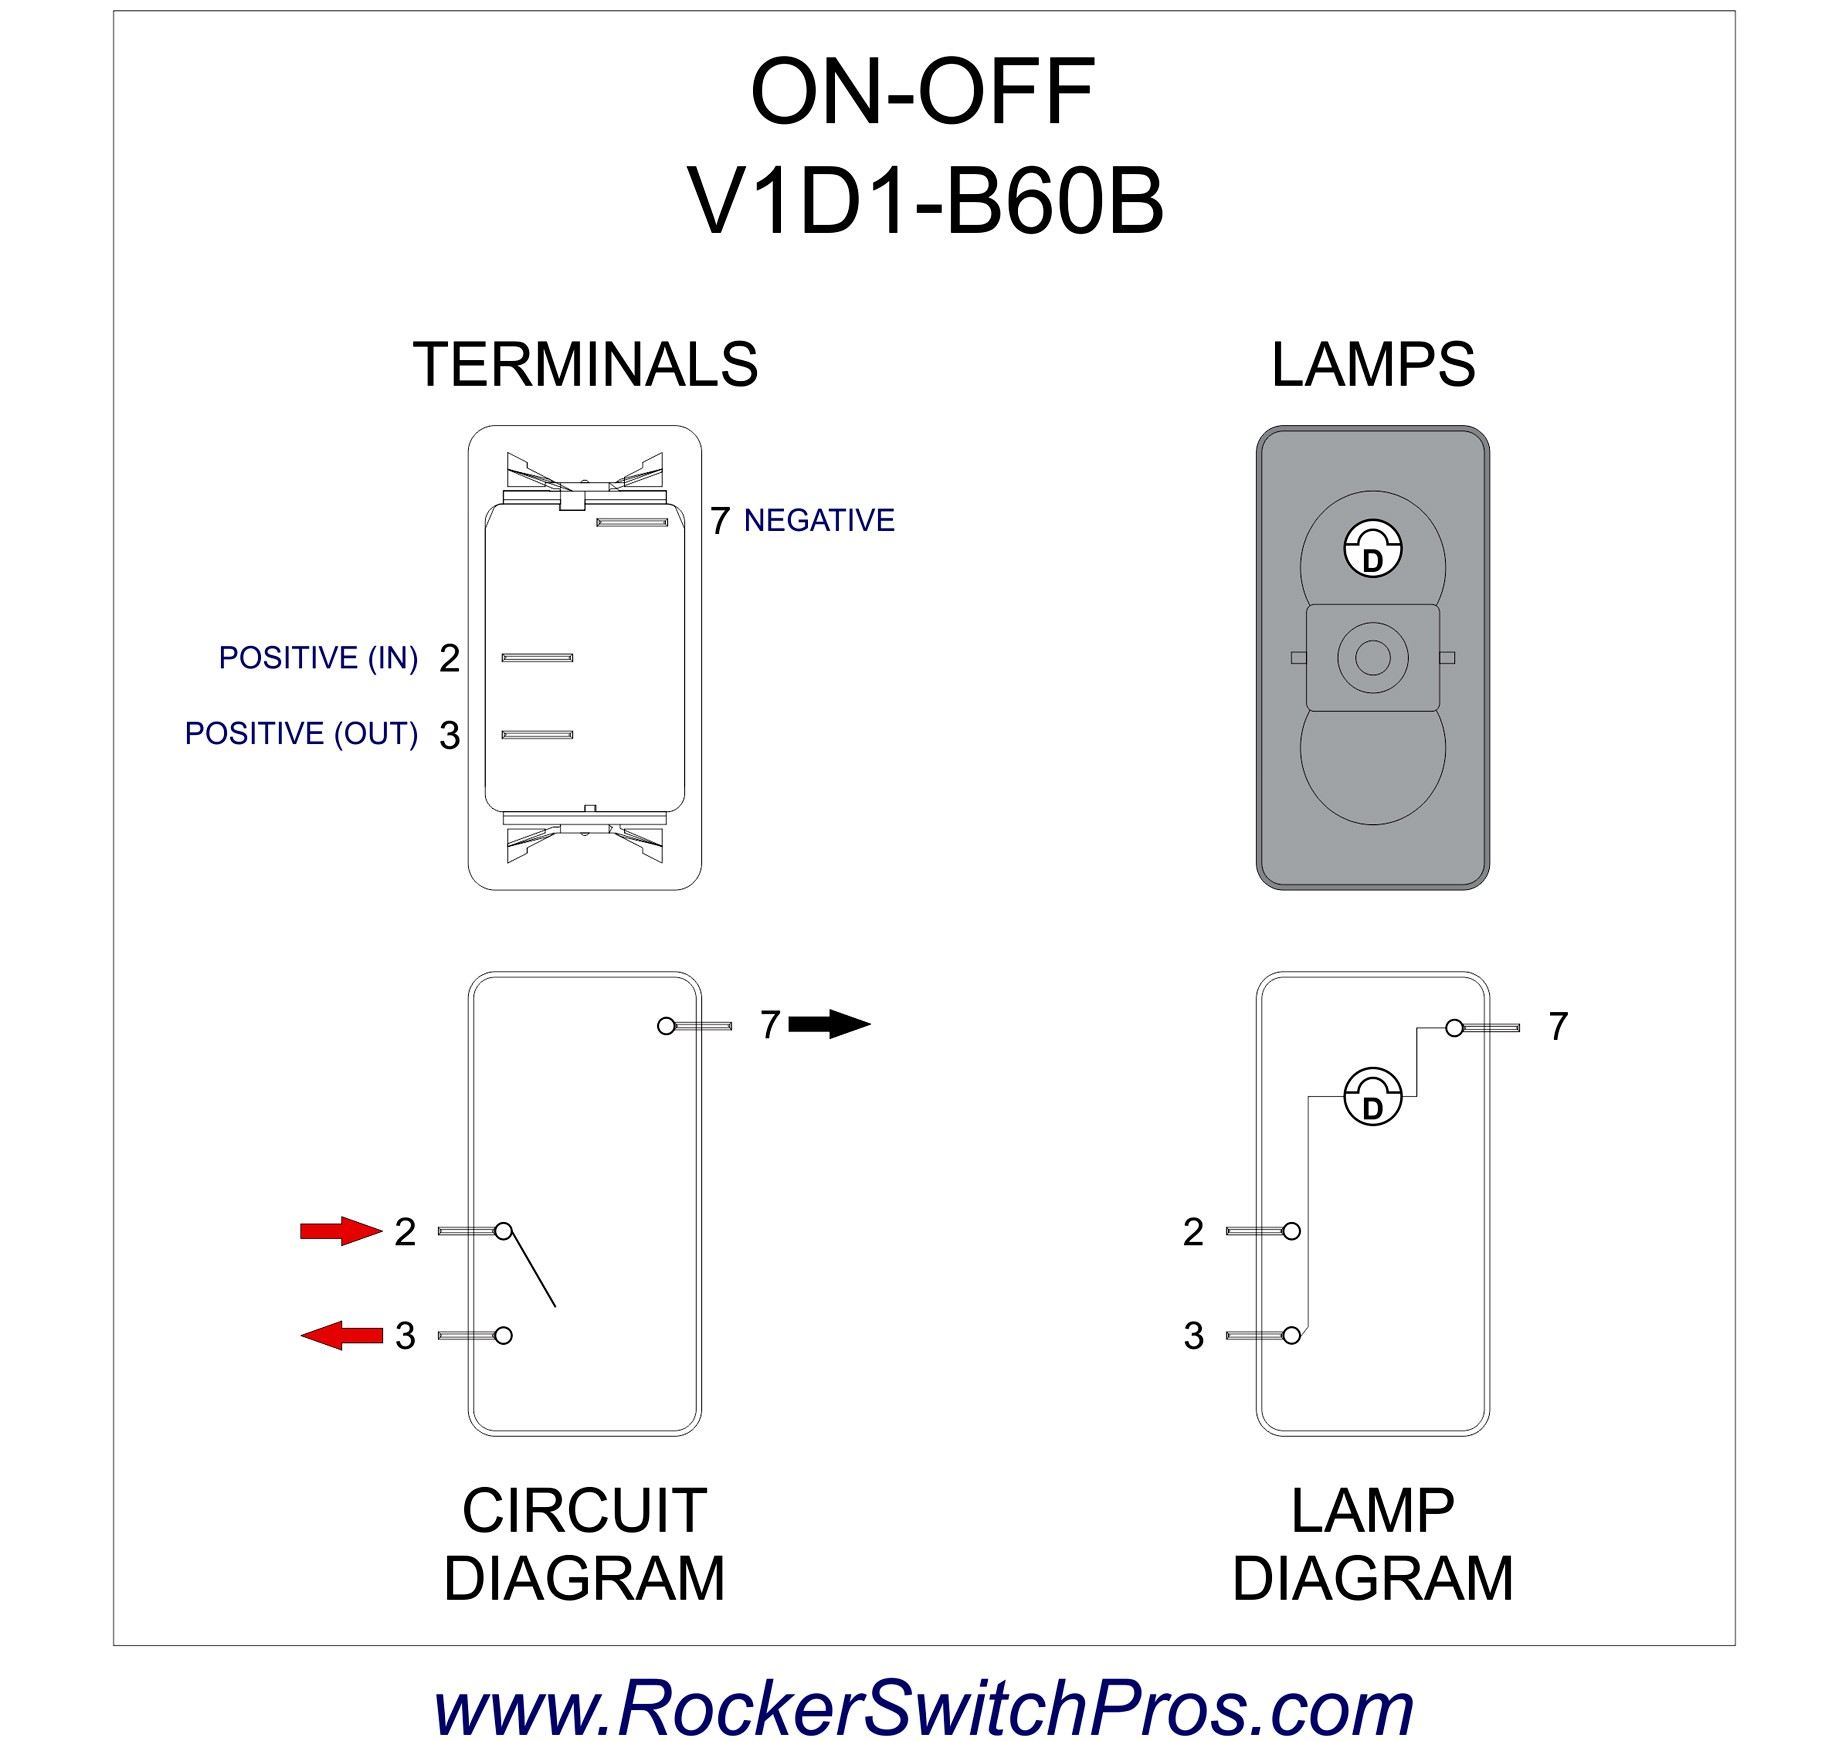 contura switch dpdt wiring diagram wiring diagram \u2022 2-way momentary switch dpdt illuminated rocker switch wiring wiring solutions rh rausco com carling technologies switch wiring diagram momentary rocker switch wiring diagram